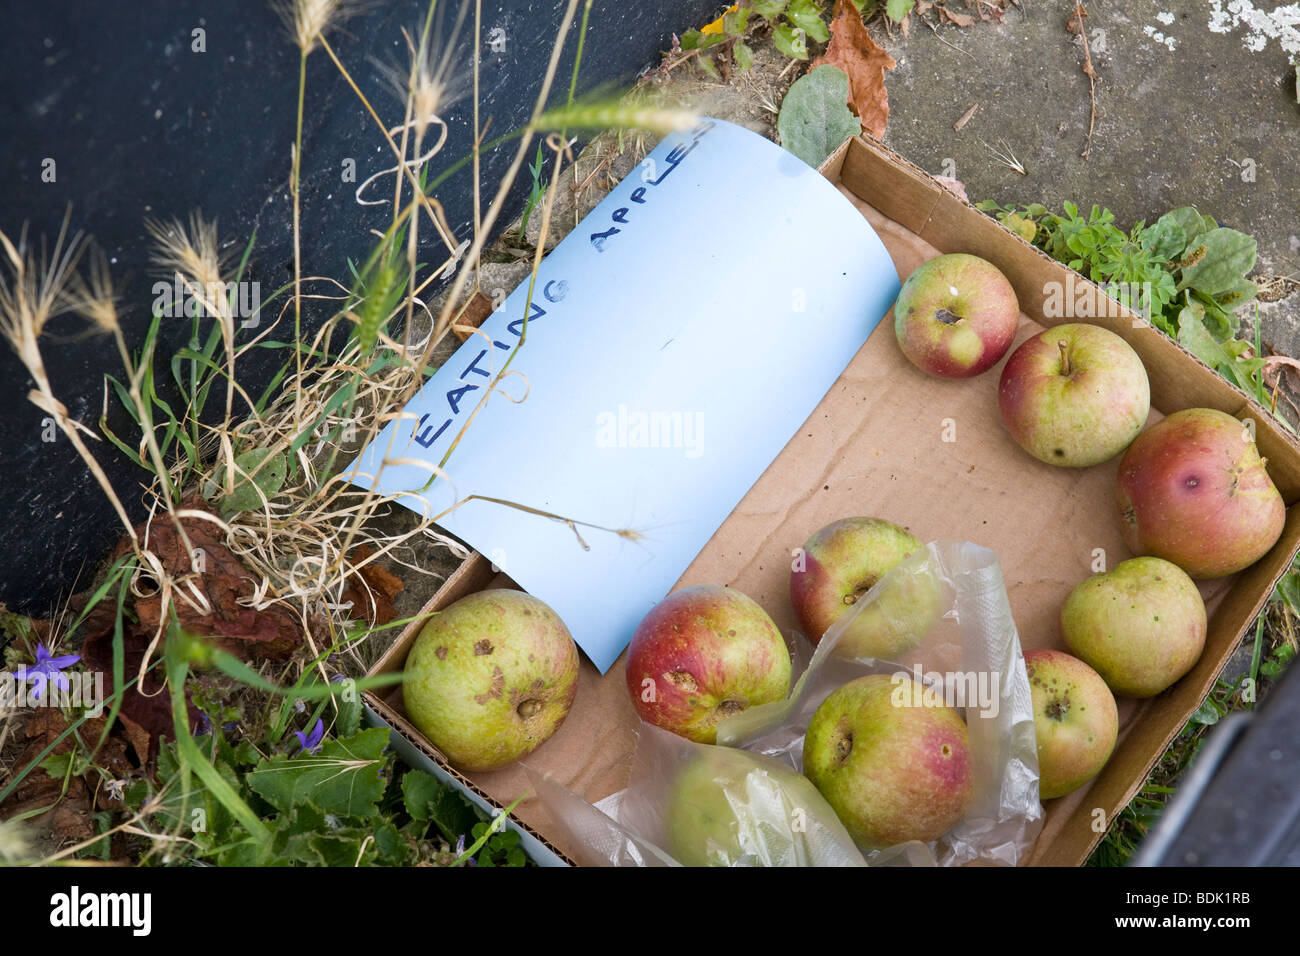 apples in a cardboard box being given away by the side of the road in an English country village - Stock Image